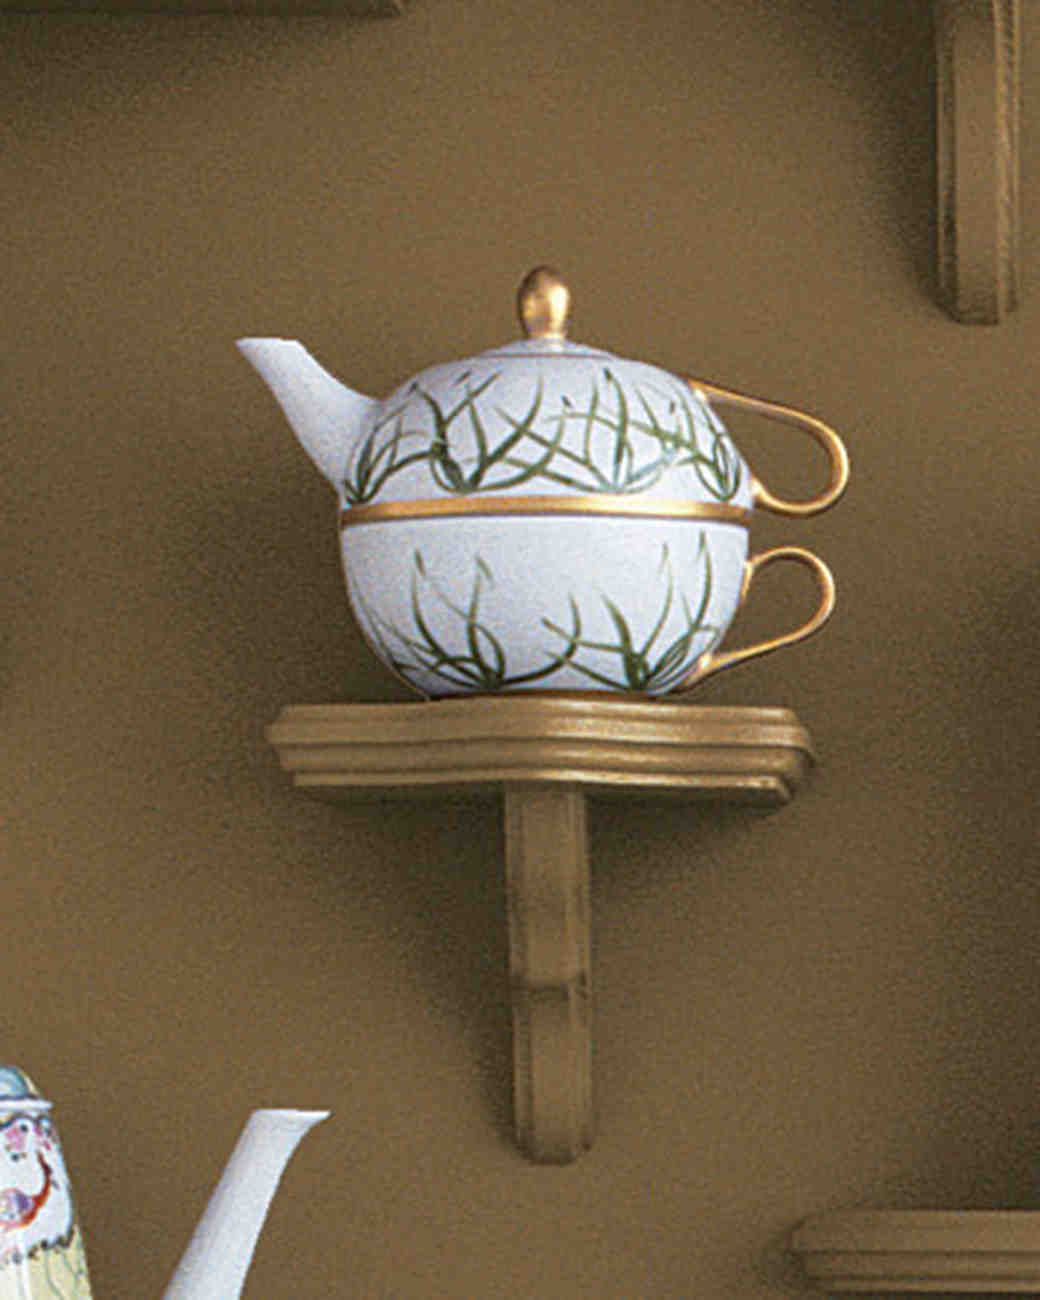 mw1004_fall04_grass_teapot.jpg